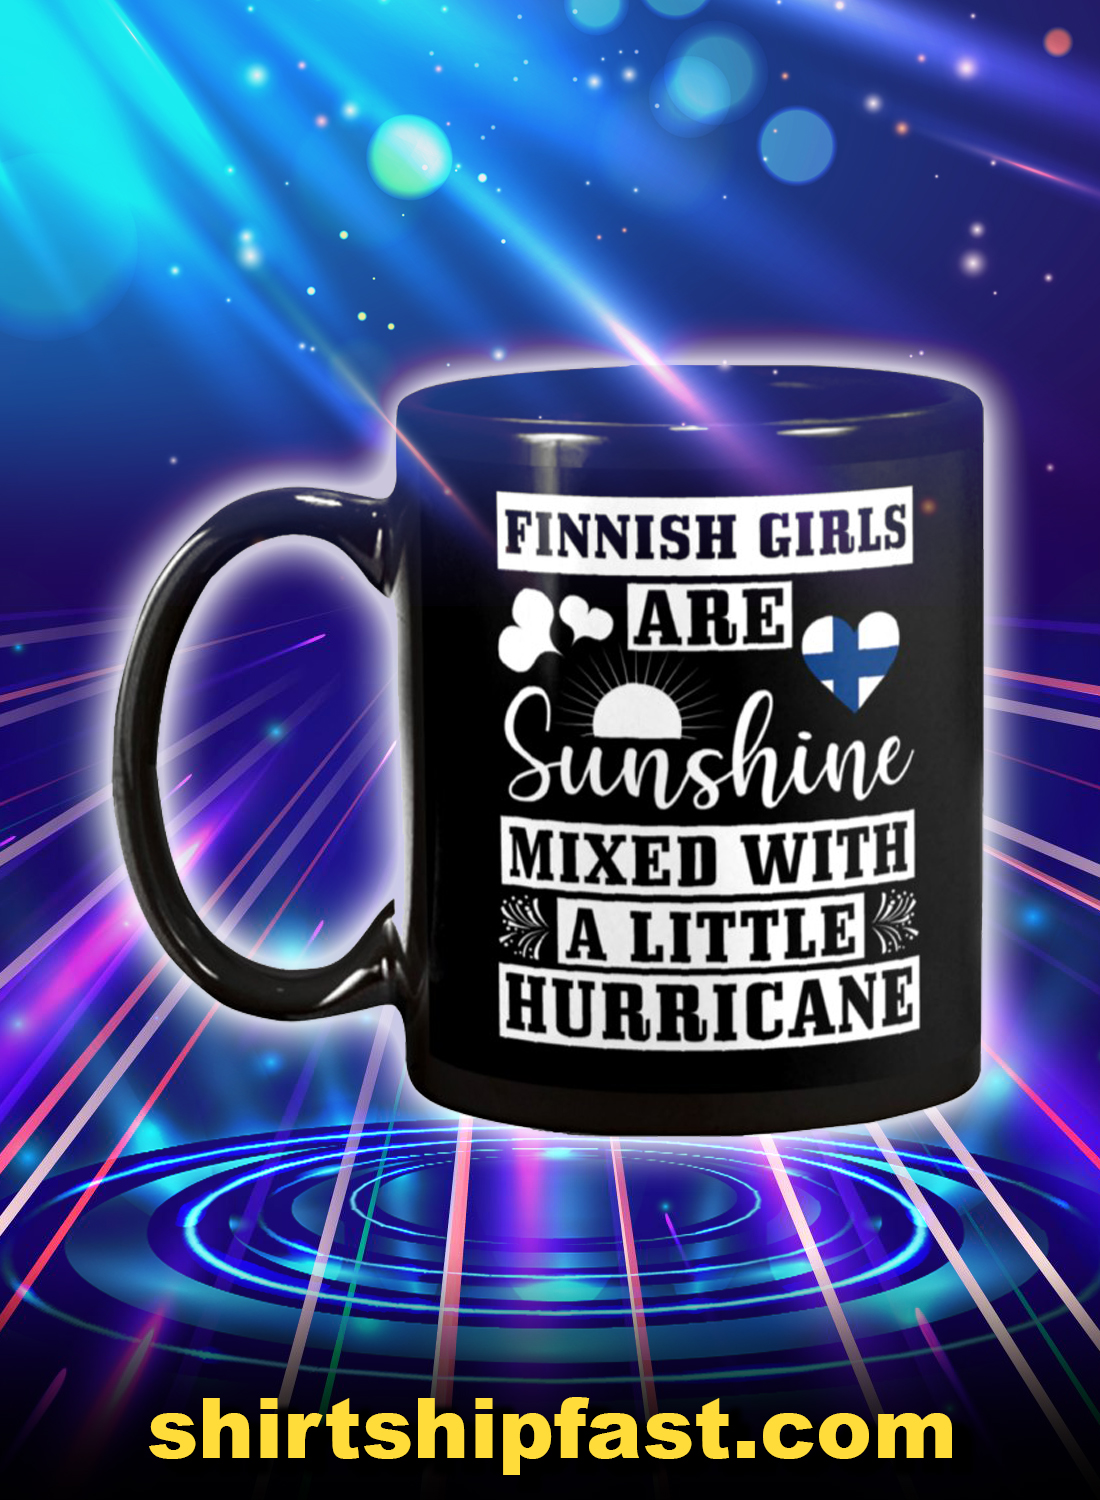 Finnish girls are sunshine mixed with a little hurricane mug - Picture 1